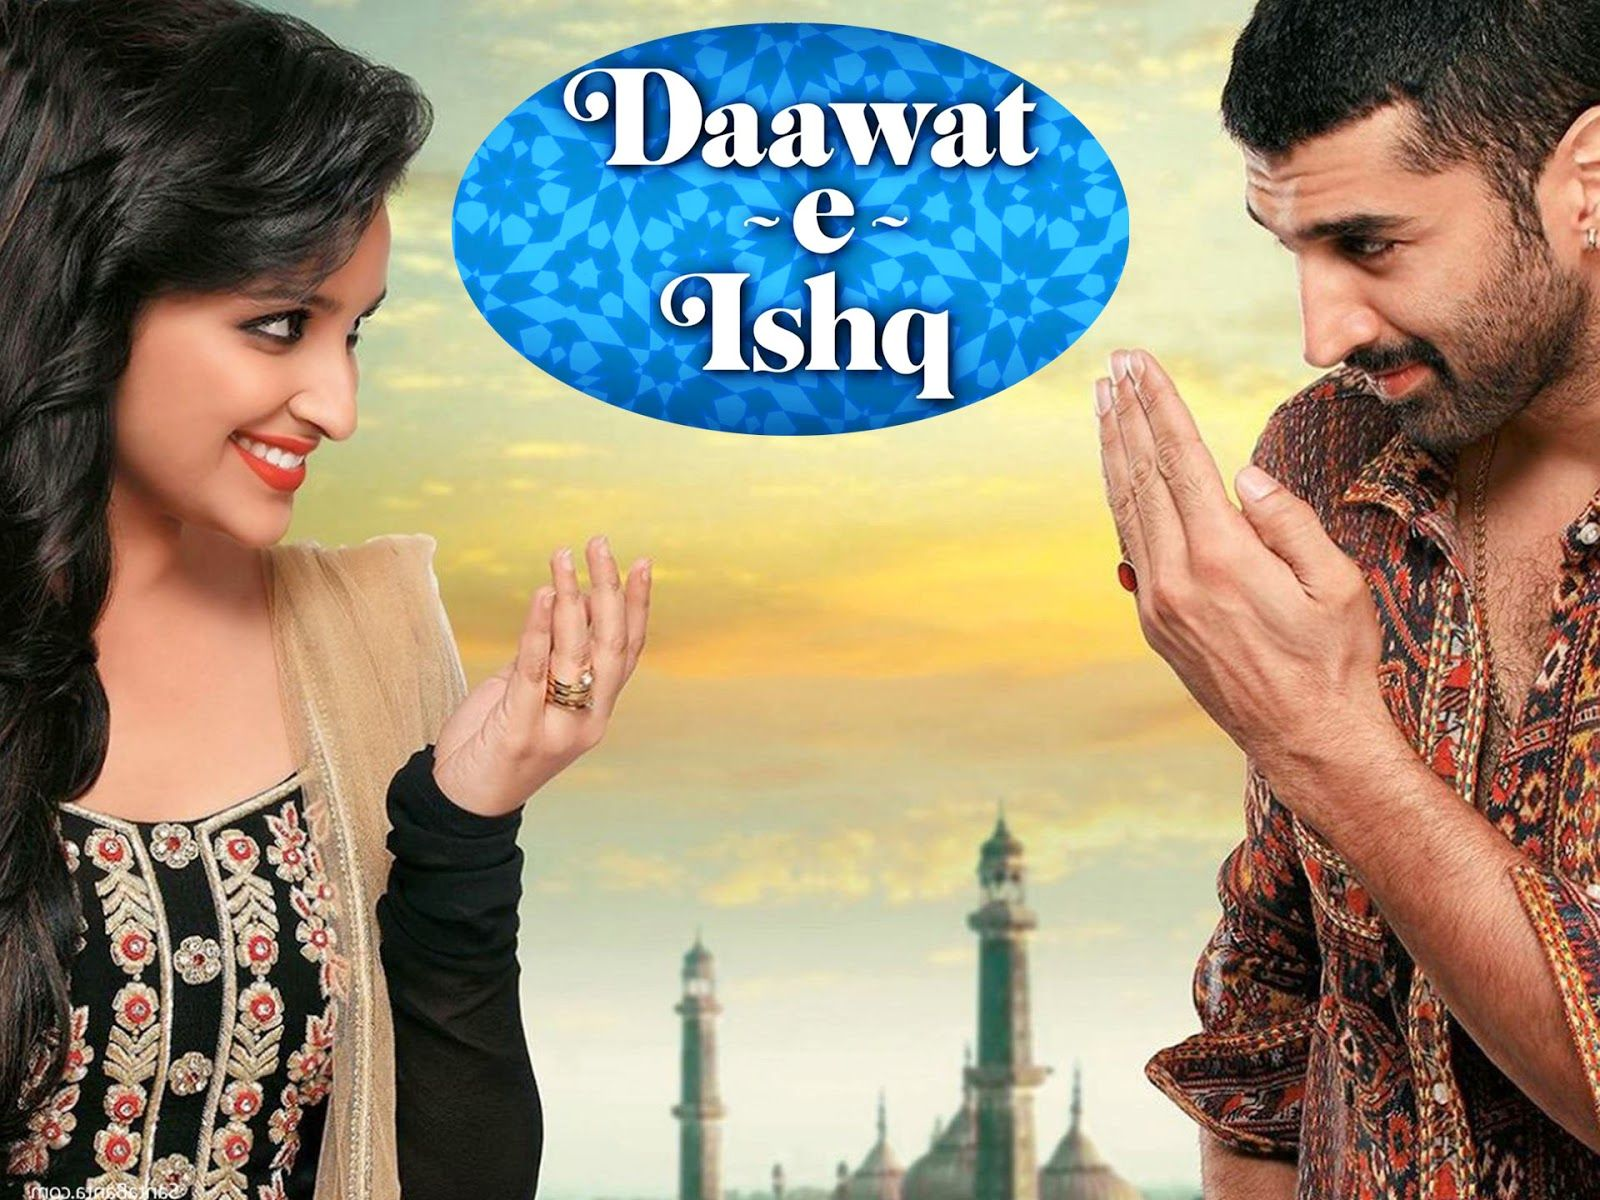 wallpaper's station: daawat - e - ishq movie hd wallpapers 2014